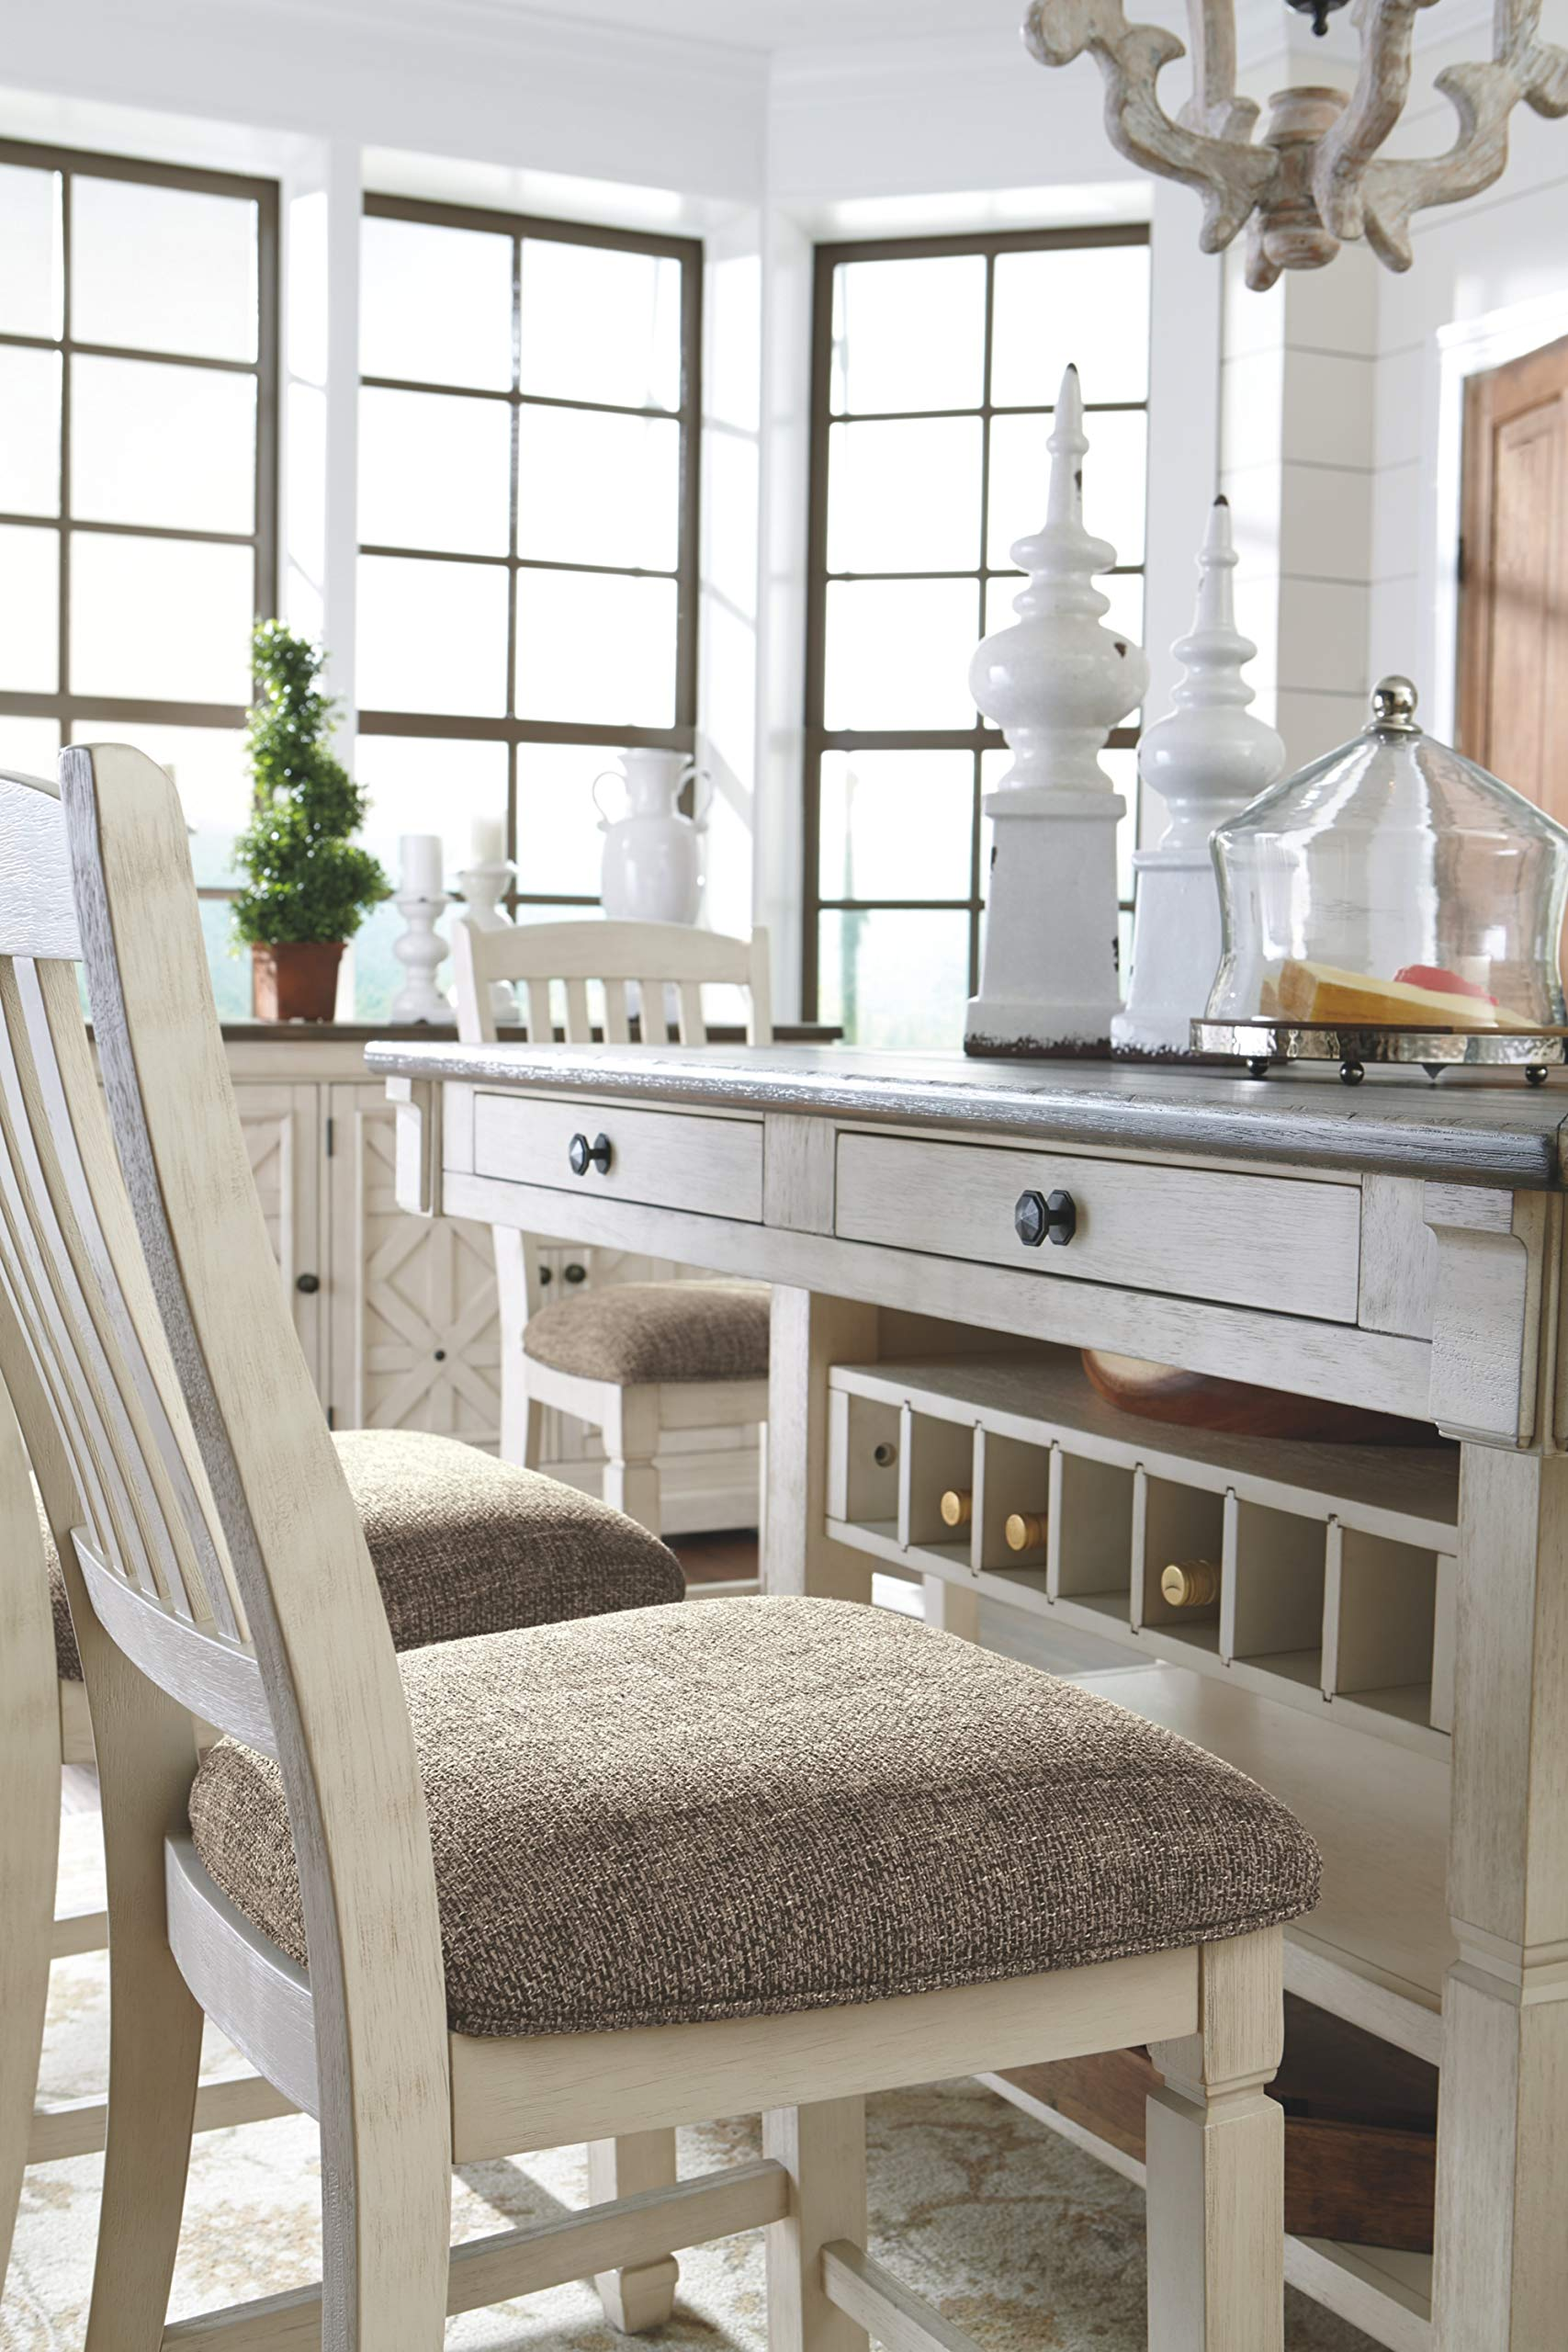 Ashley Furniture Signature Design - Bolanburg Counter Height Dining Room Table - Antique White by Signature Design by Ashley (Image #7)